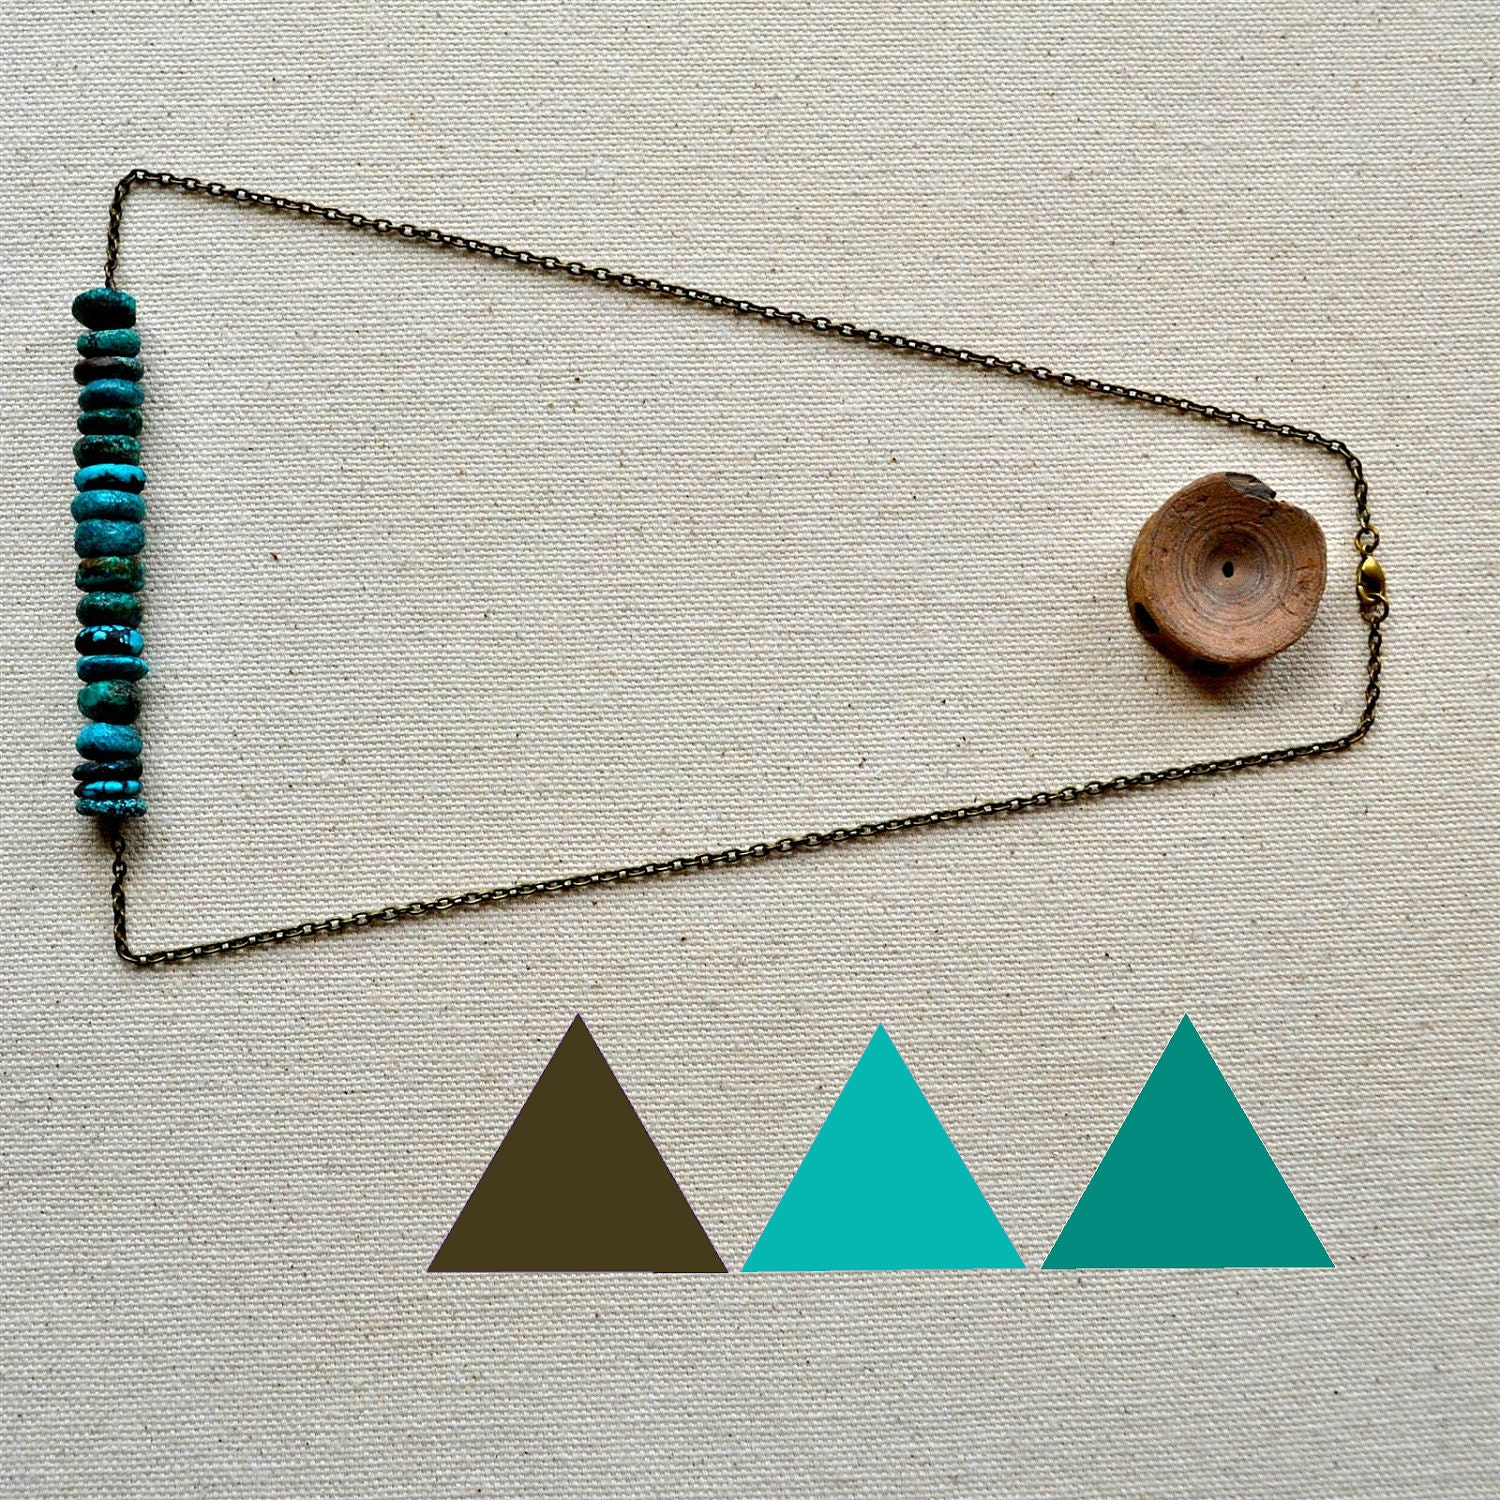 brevity necklace in turquoise v.2